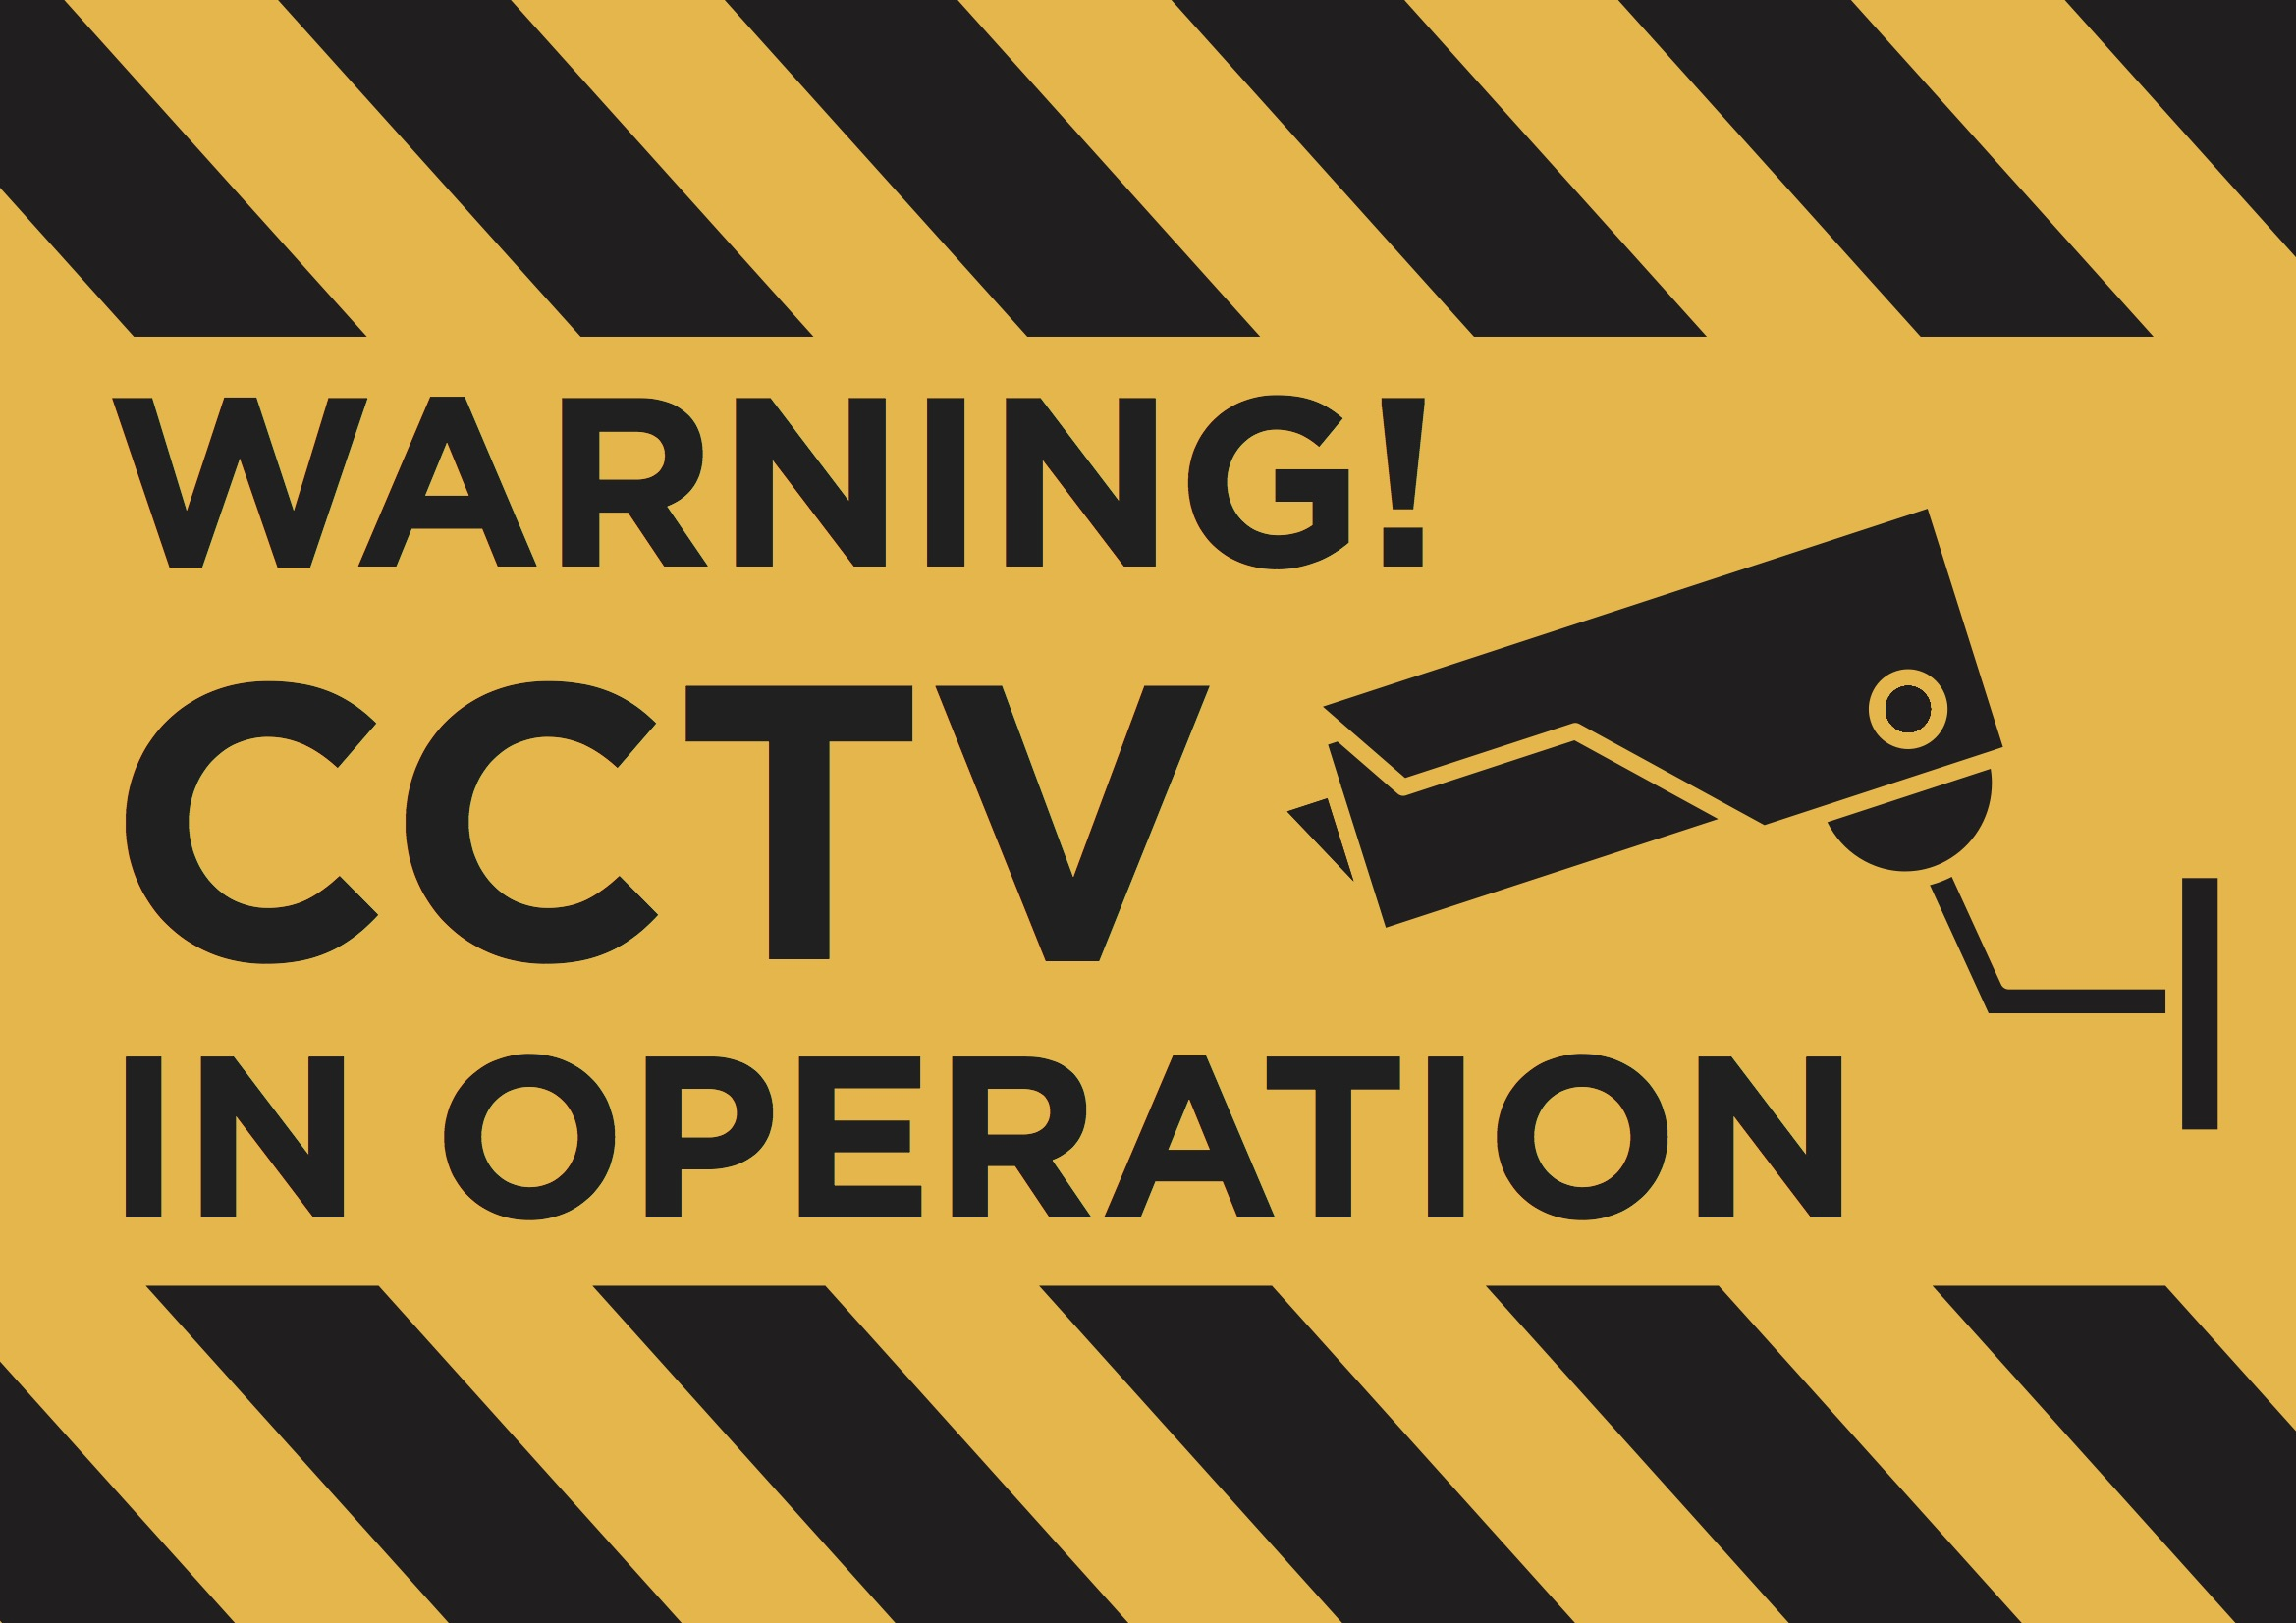 S2 Plastic CCTV in Operation Sign A4 Correx A2 Foamex A3